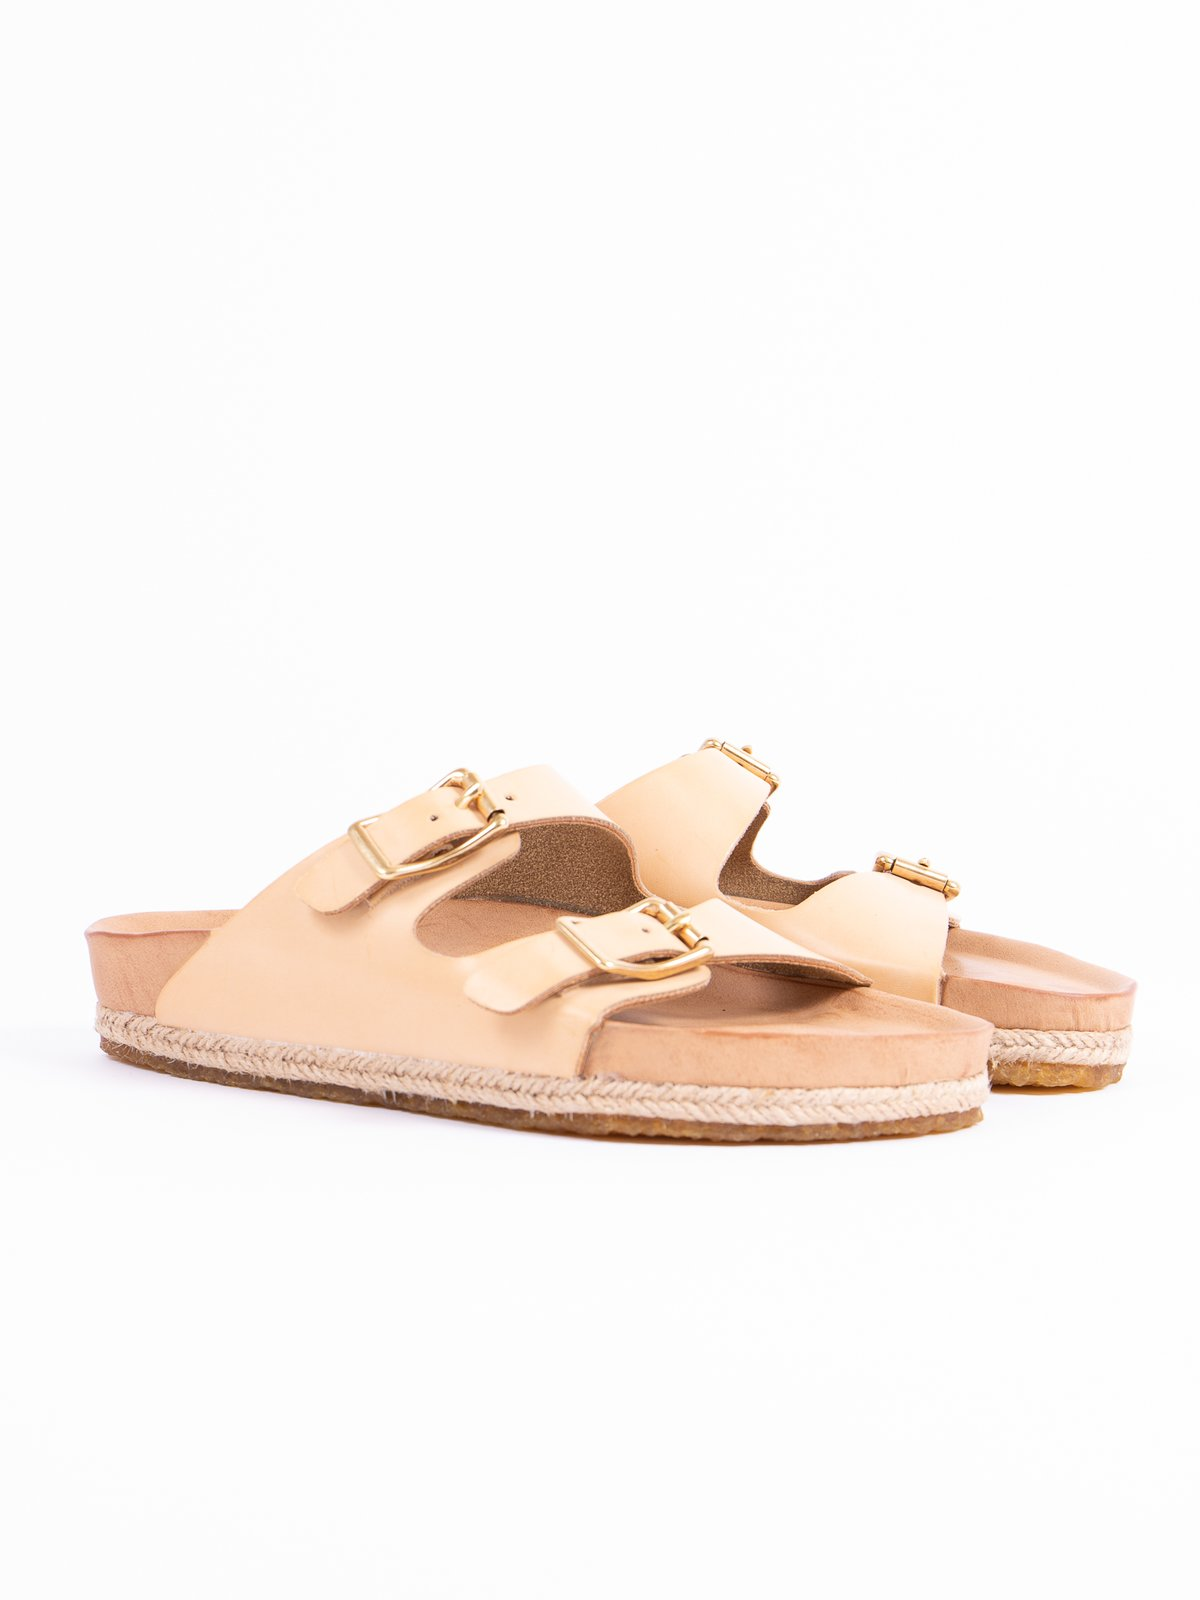 Natural Arizonian Sandal - Image 1